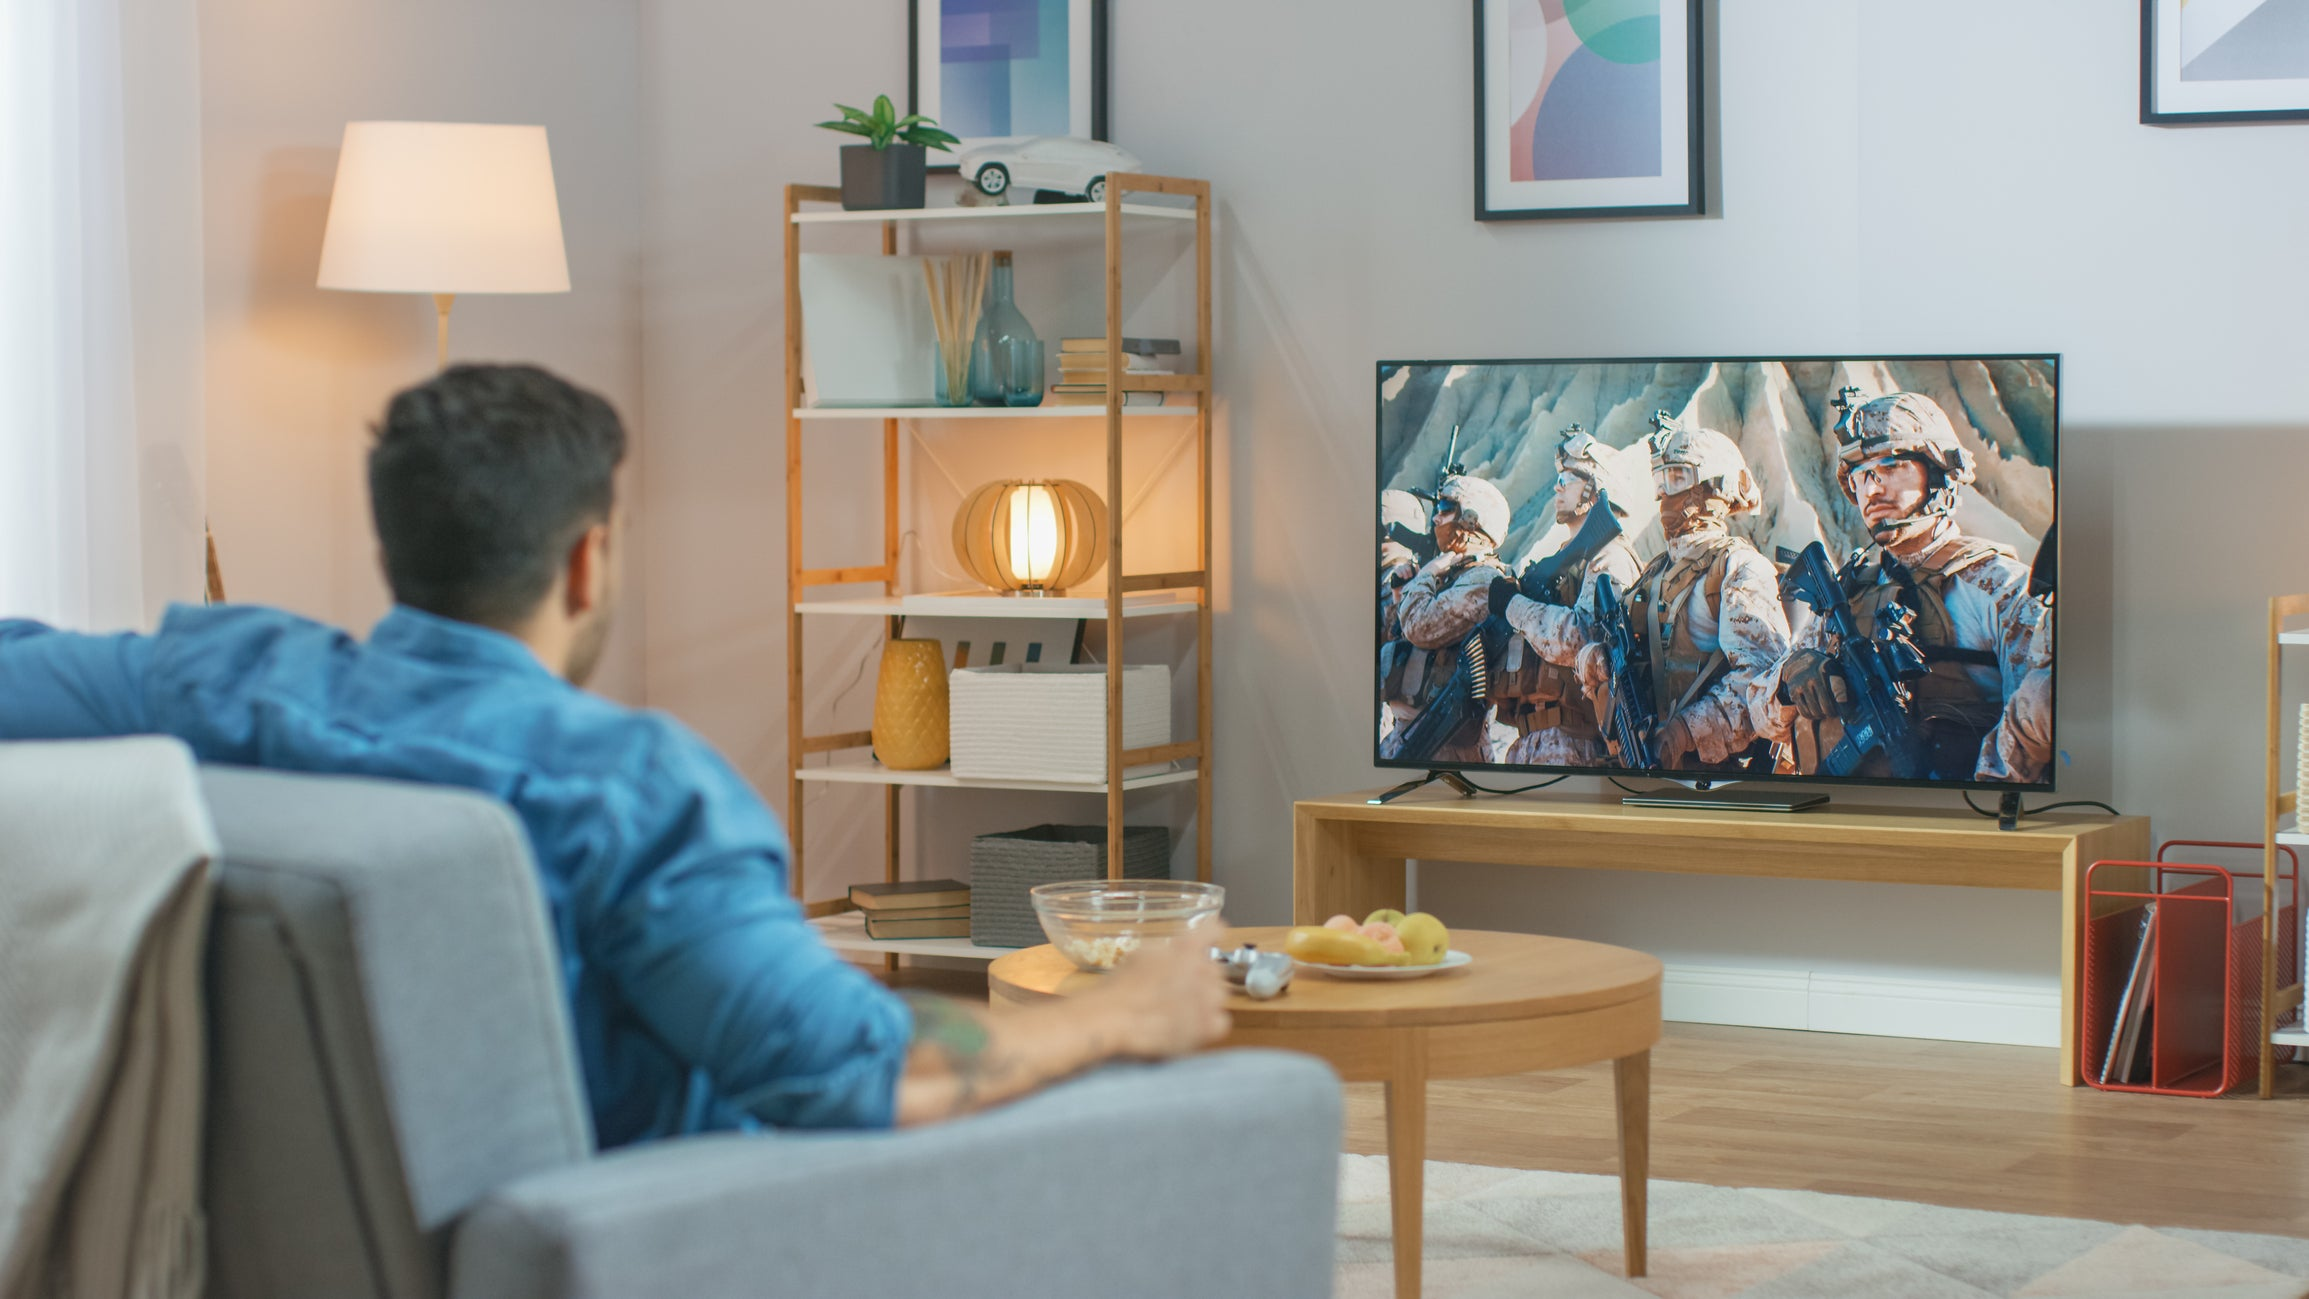 Another AT&T Streaming Service May Be Doomed | The Motley Fool